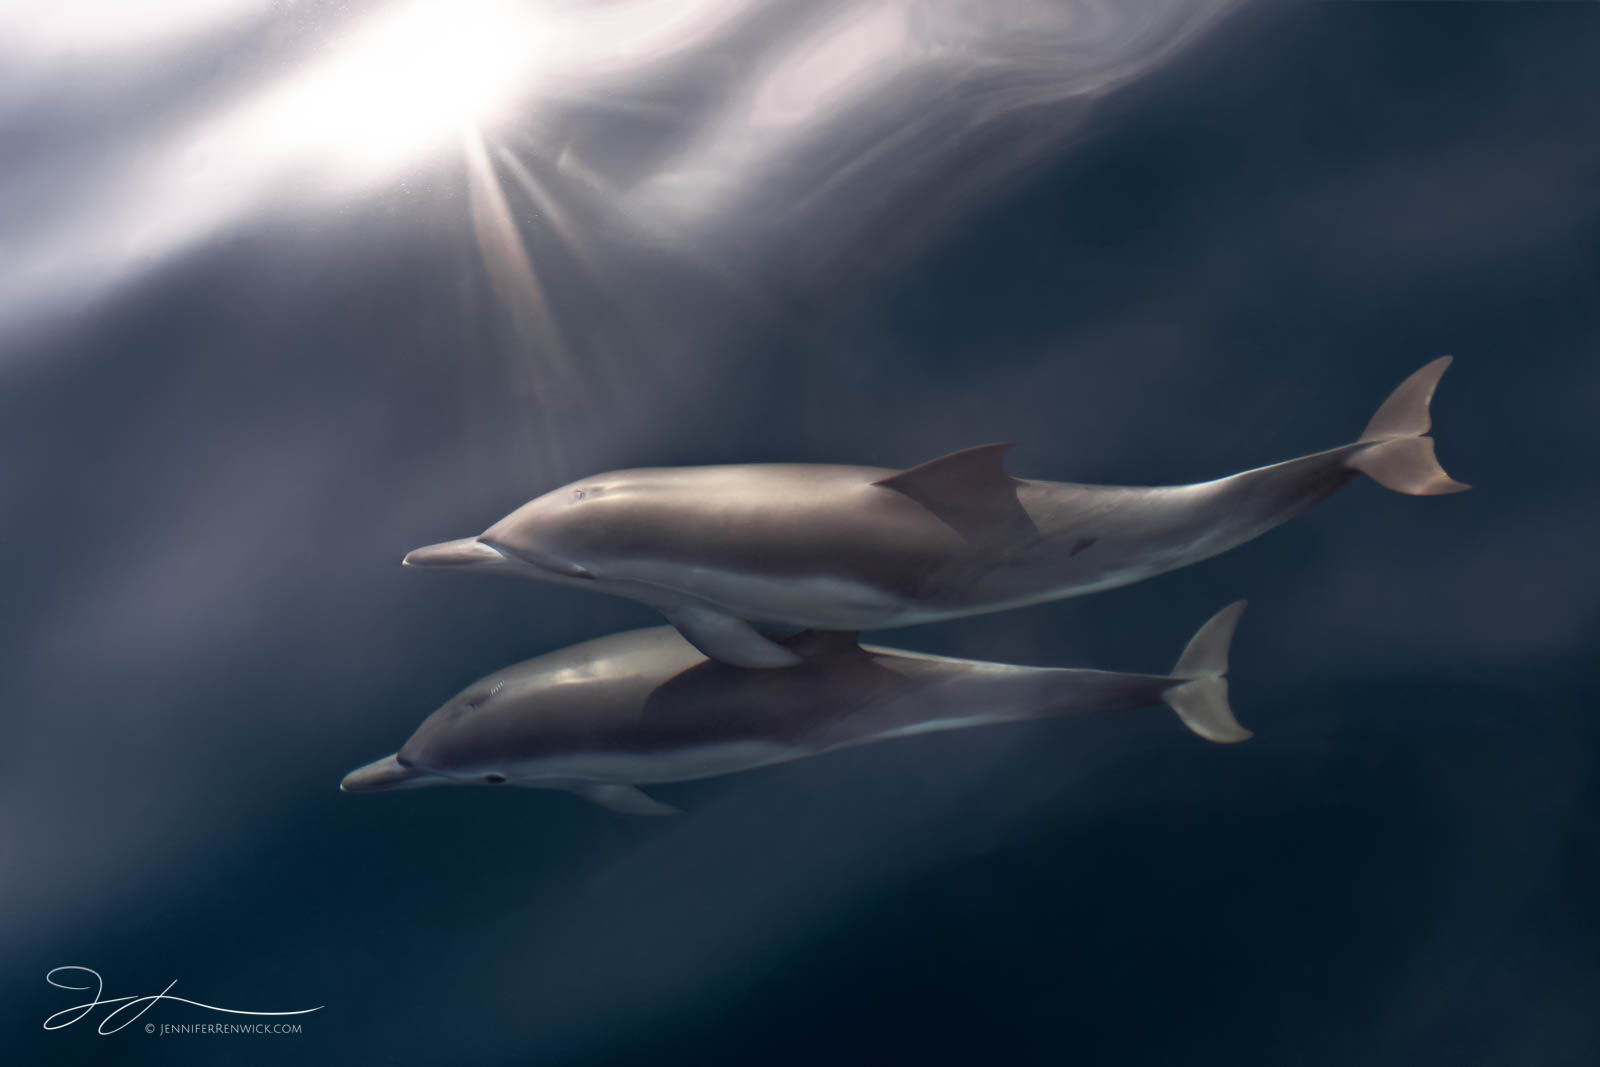 Two common dolphins glide together through a sea filled with light rays.